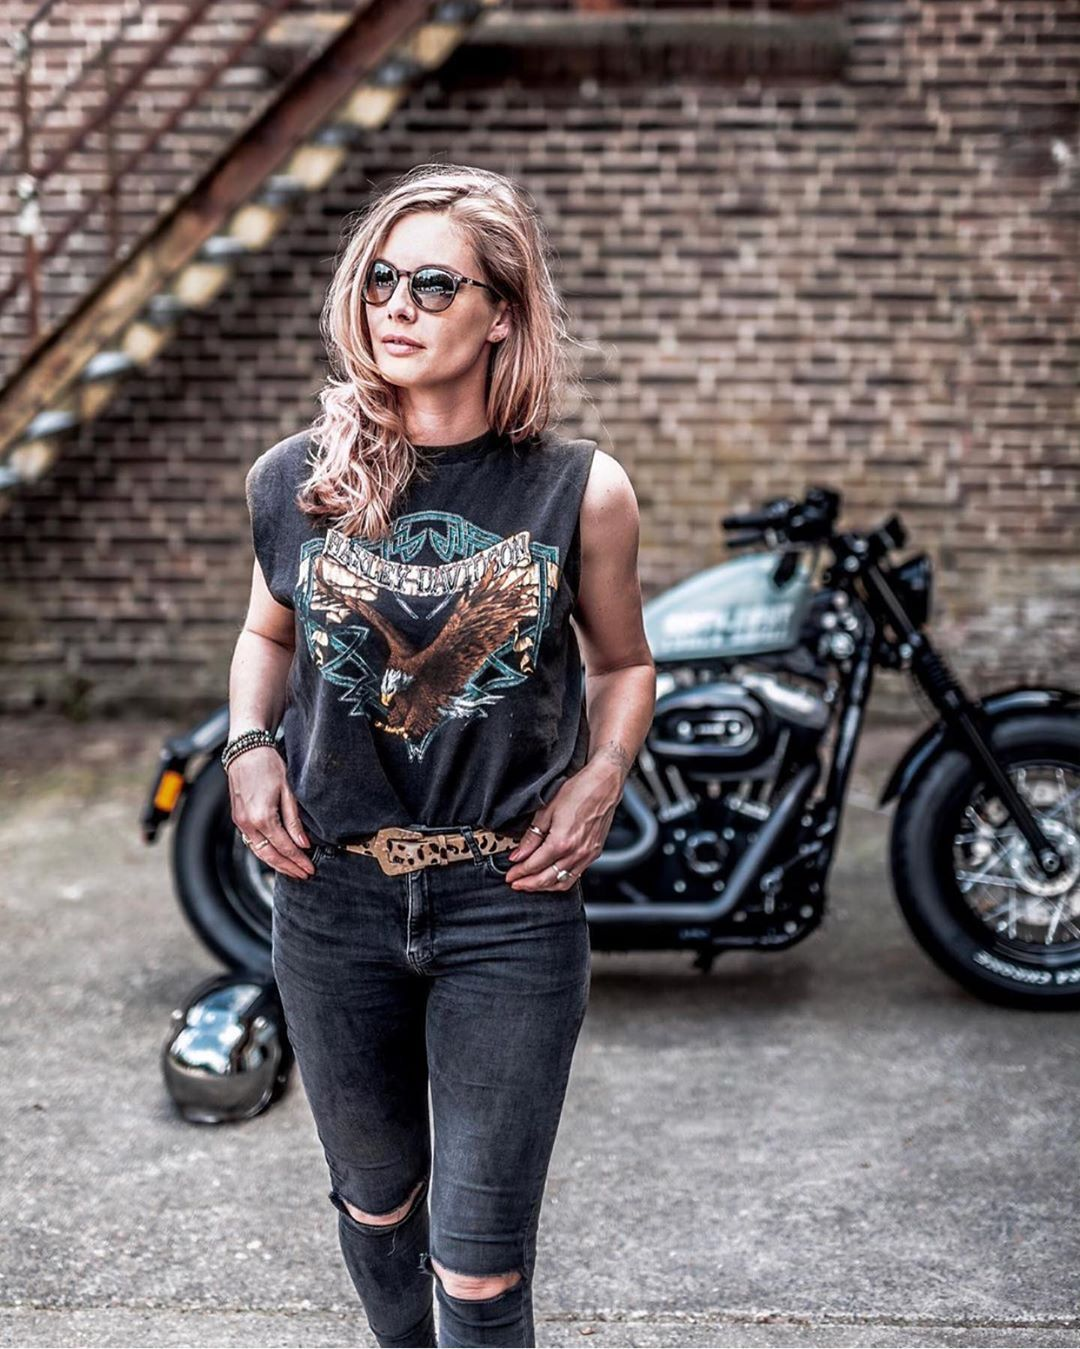 "Chicks on Choppers&Caferacers🔹 on Instagram: ""The Flying D U T C H I E S 🇱🇺🏍💨 Follow @bikerchicksgram for the best bikerchicks on Customs, Cafe racers & Choppers🤘🏻 »…"""